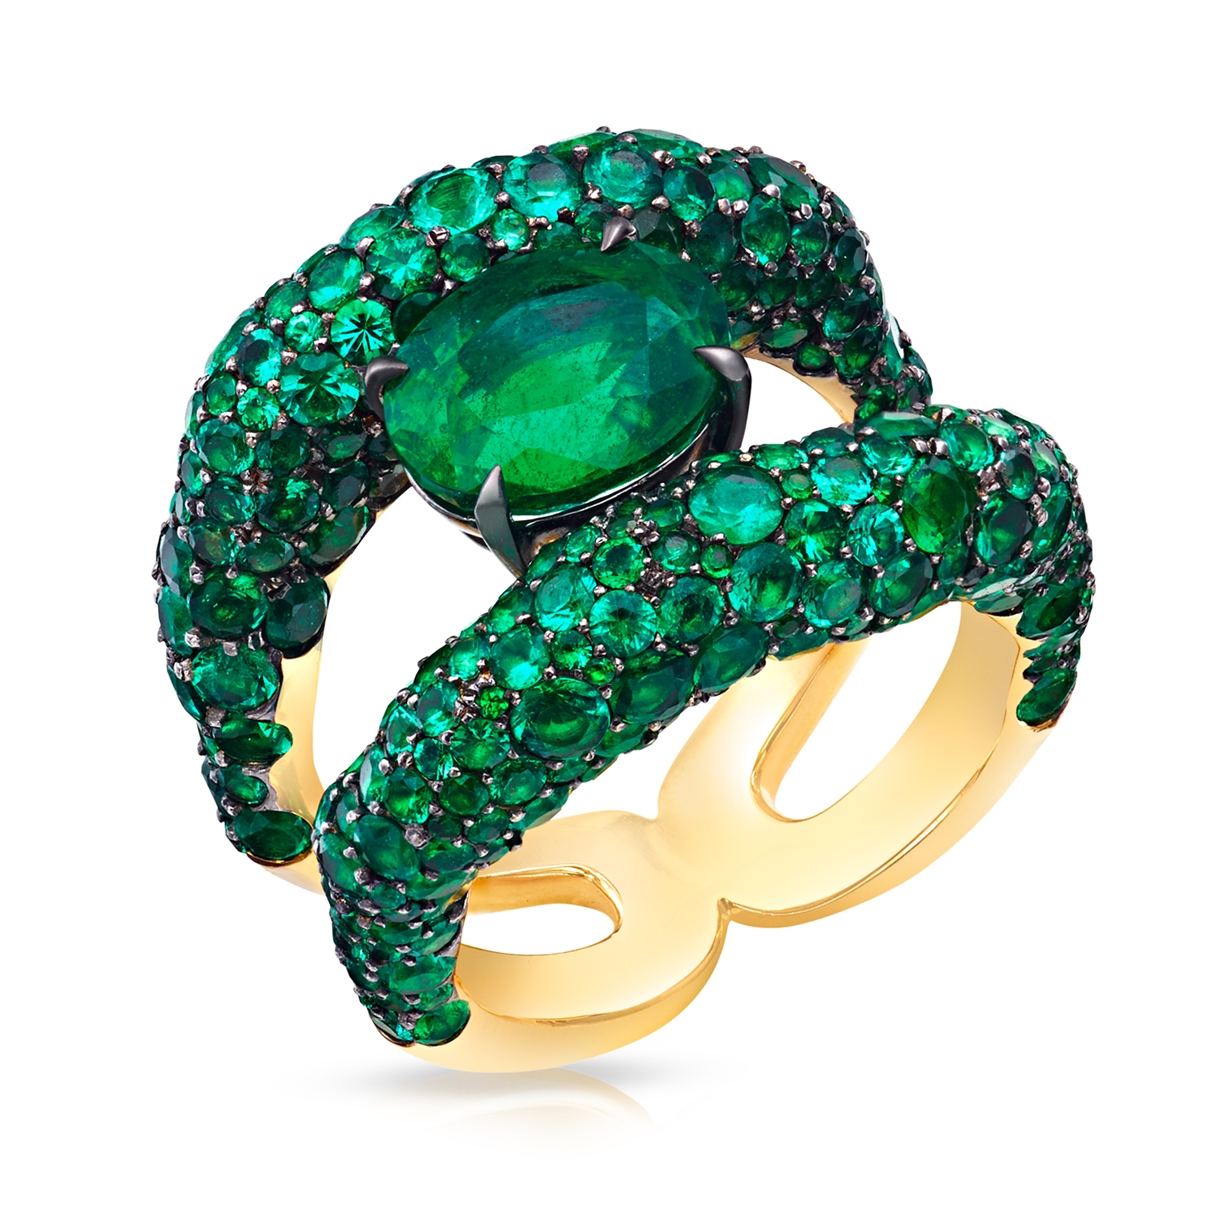 Charmeuse Emerald & Yellow Gold Ring   Fabergé